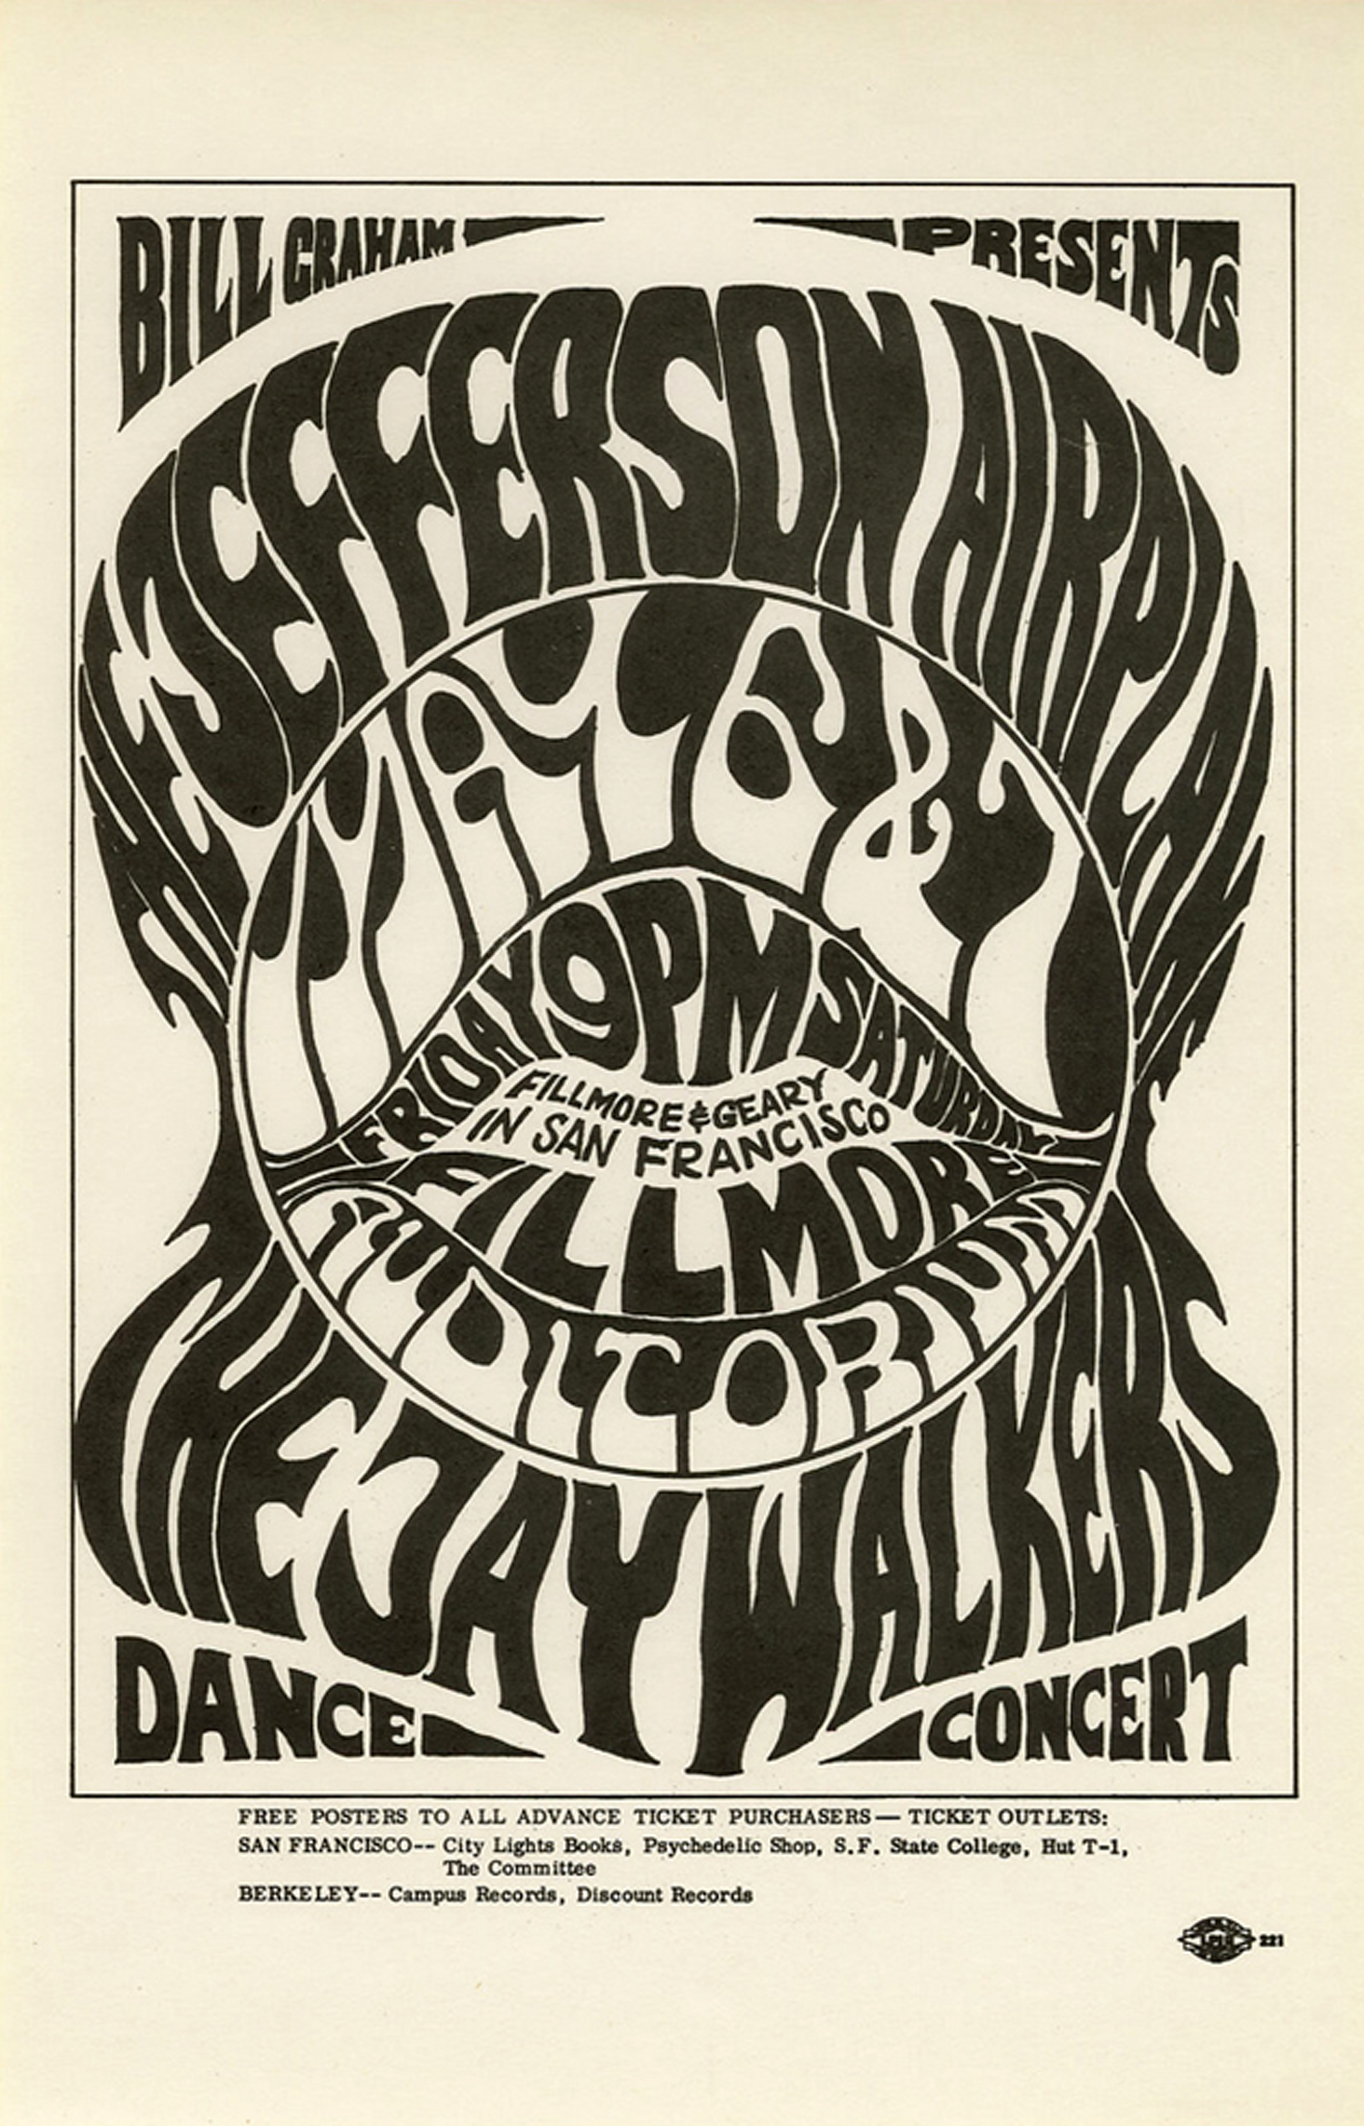 Jefferson Airplane at the Fillmore (San Francisco, 1966)